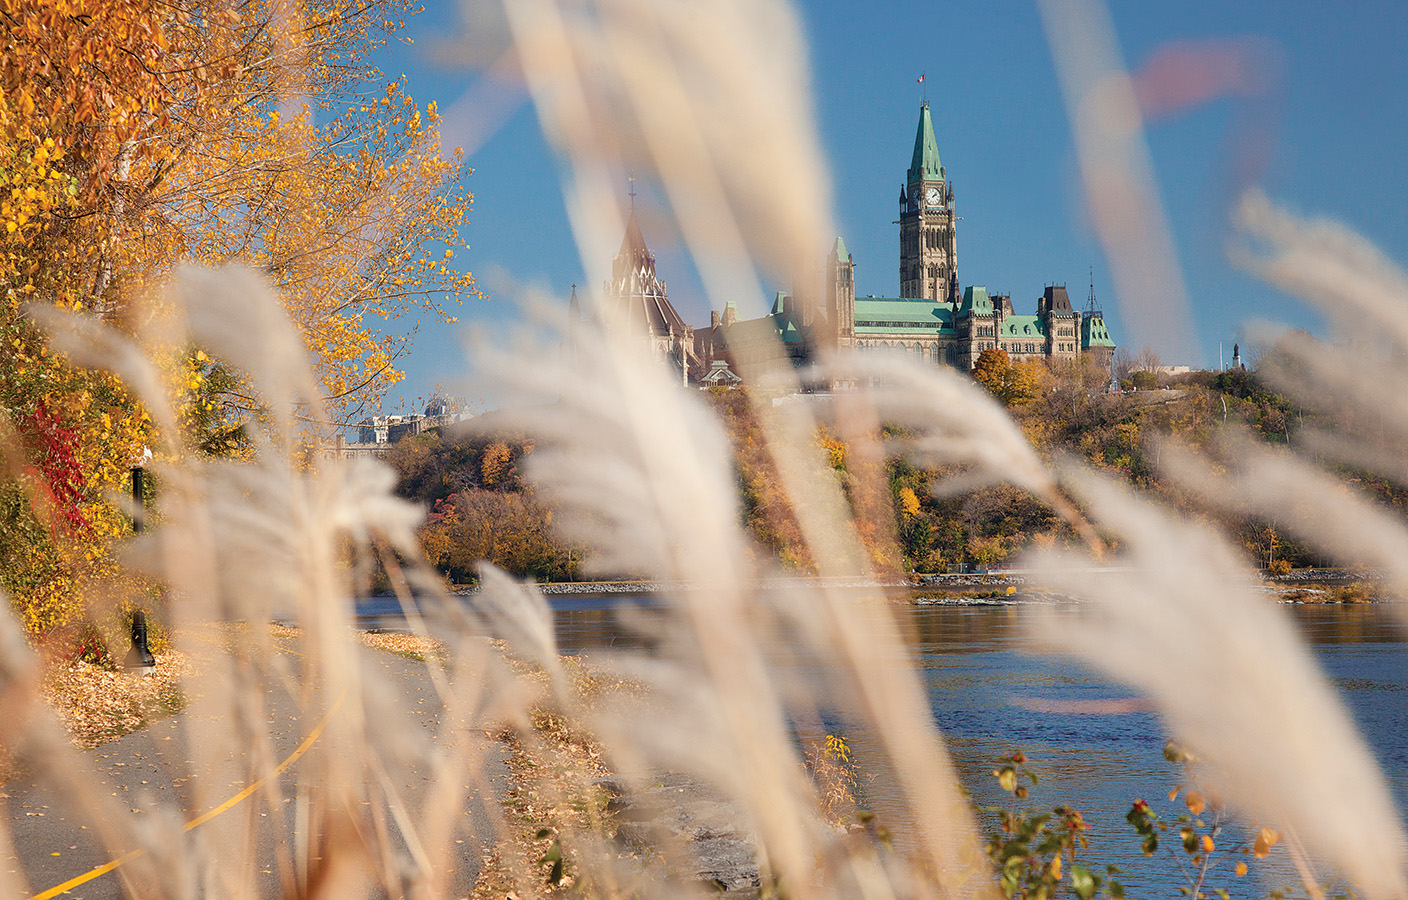 Parliament Hill in the fall canvas   $160.00  29 inches W x 18 inches H x .75 inch D Photo canvas of Parliament Hill. White border.